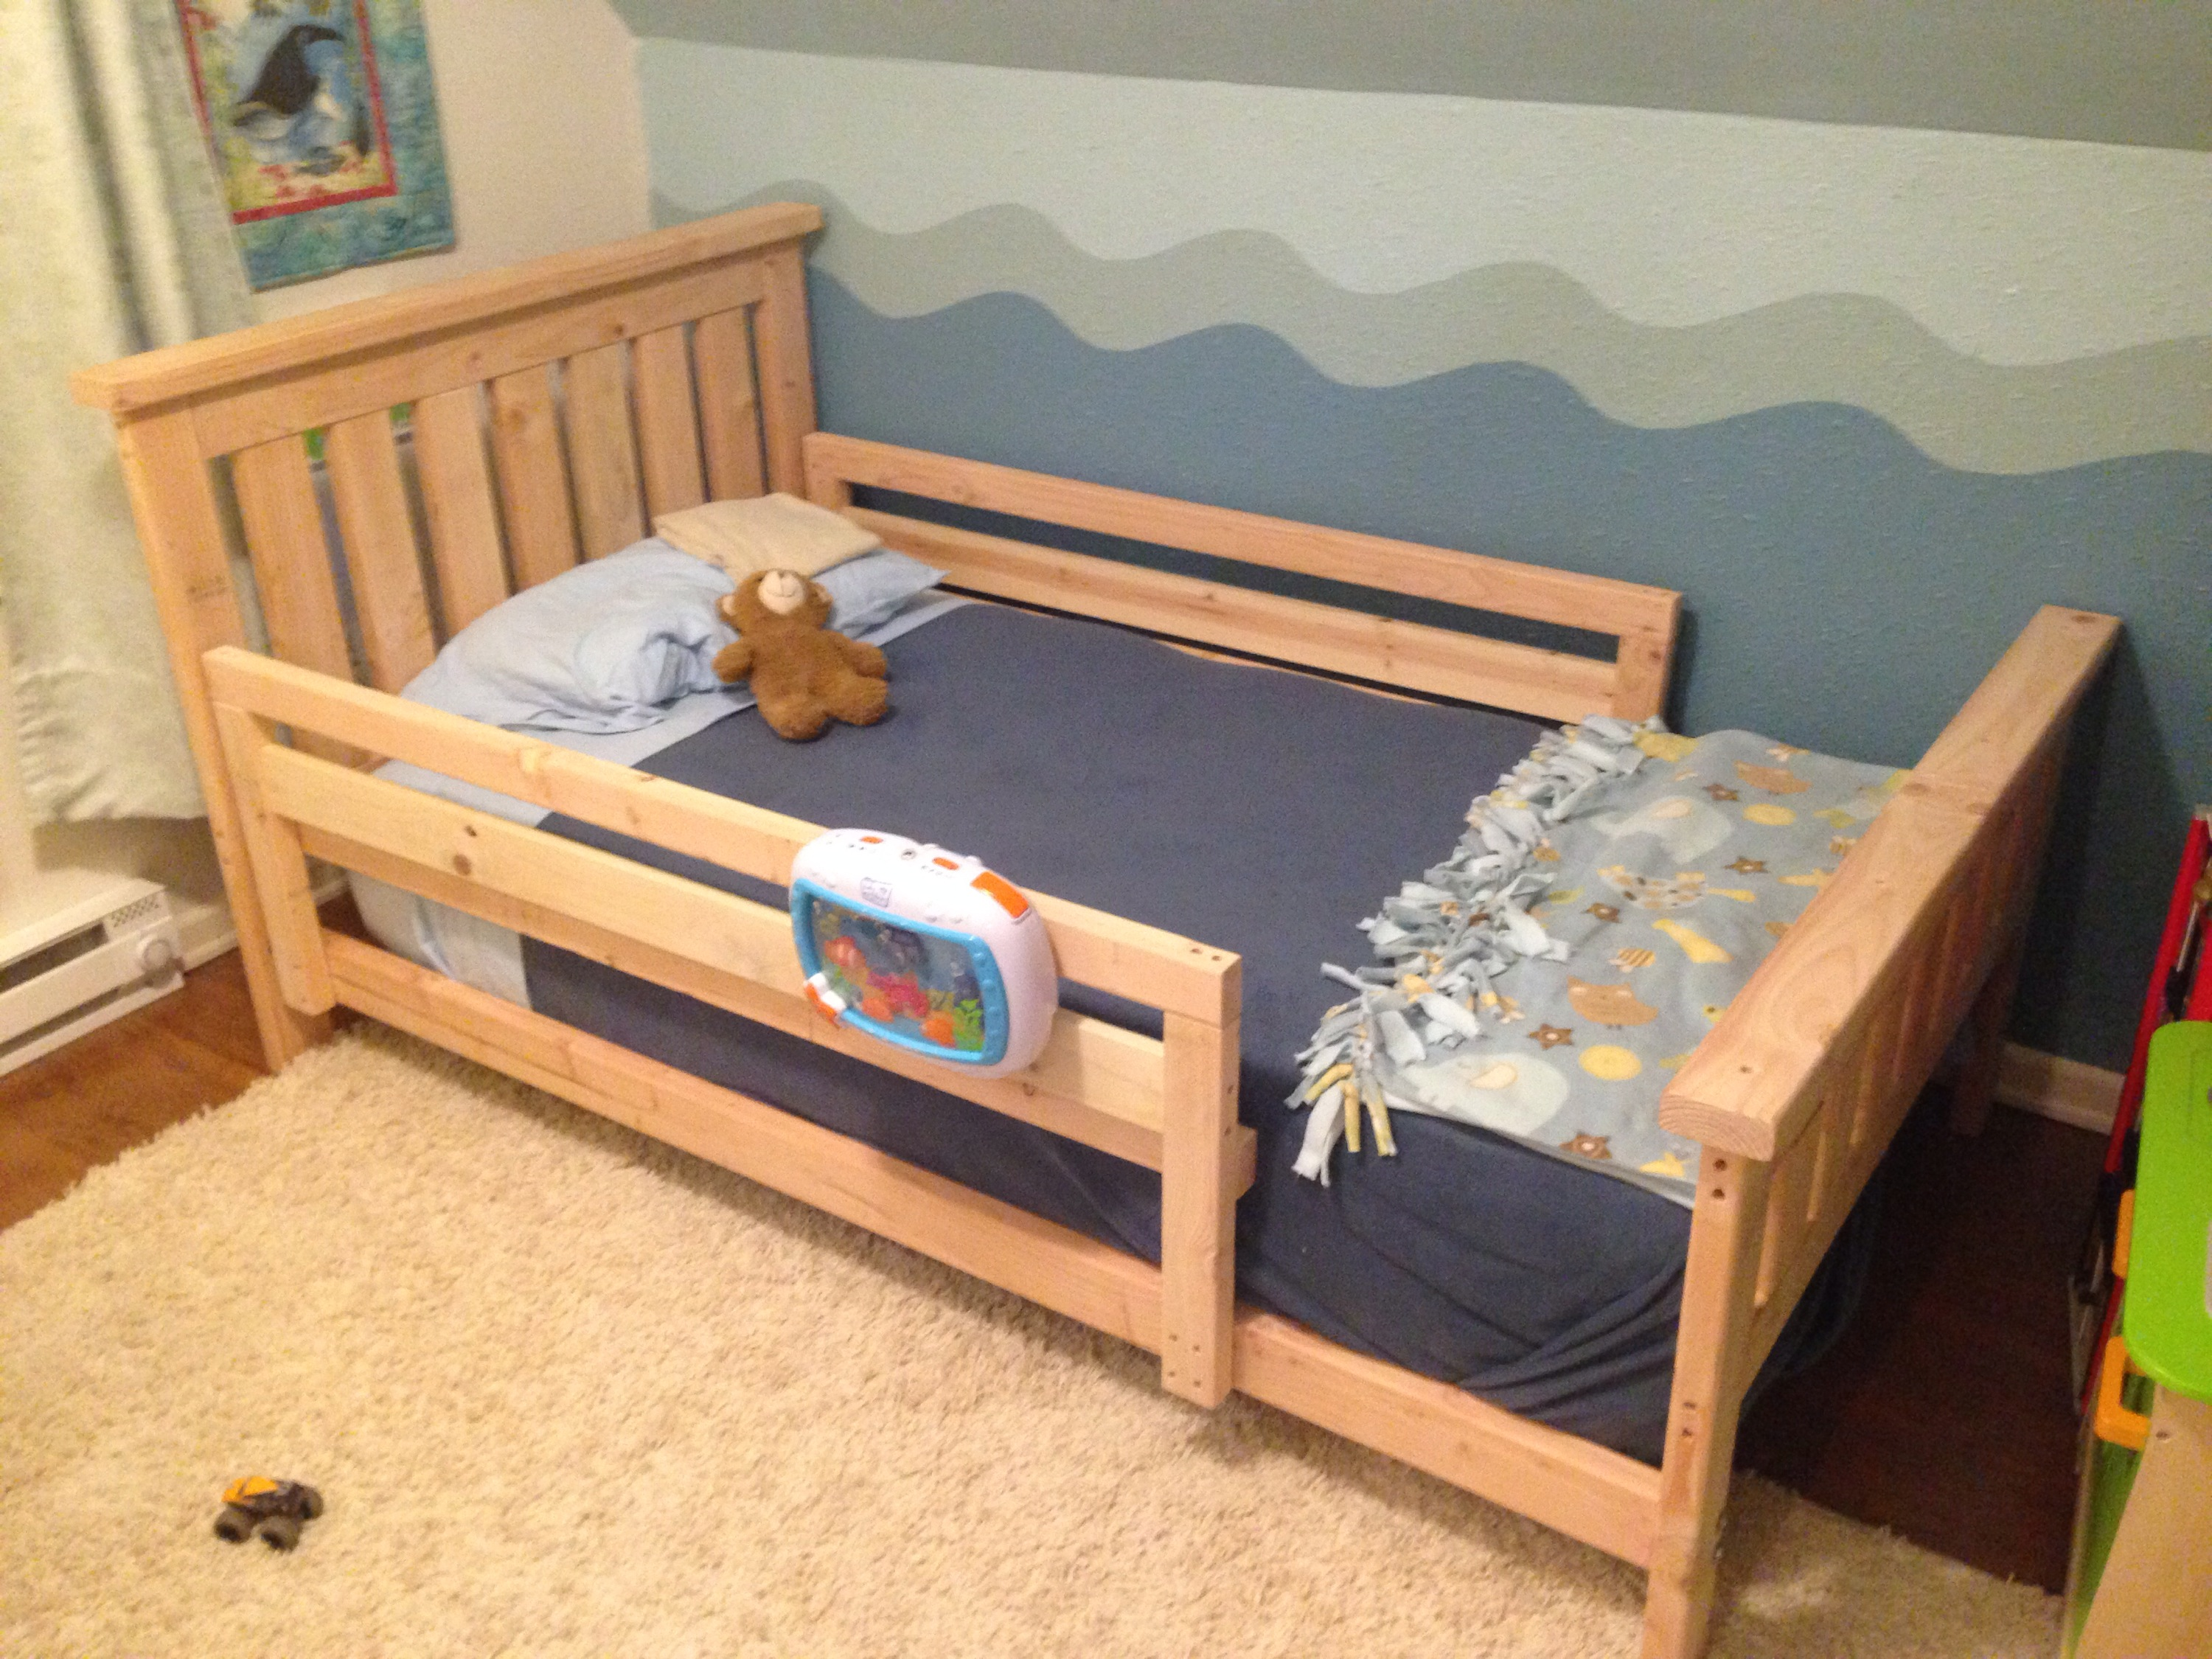 Popular I used eight foot boards and two foot boards One modification I made to the bed bed frame plans is to add a toddler rail to prevent the